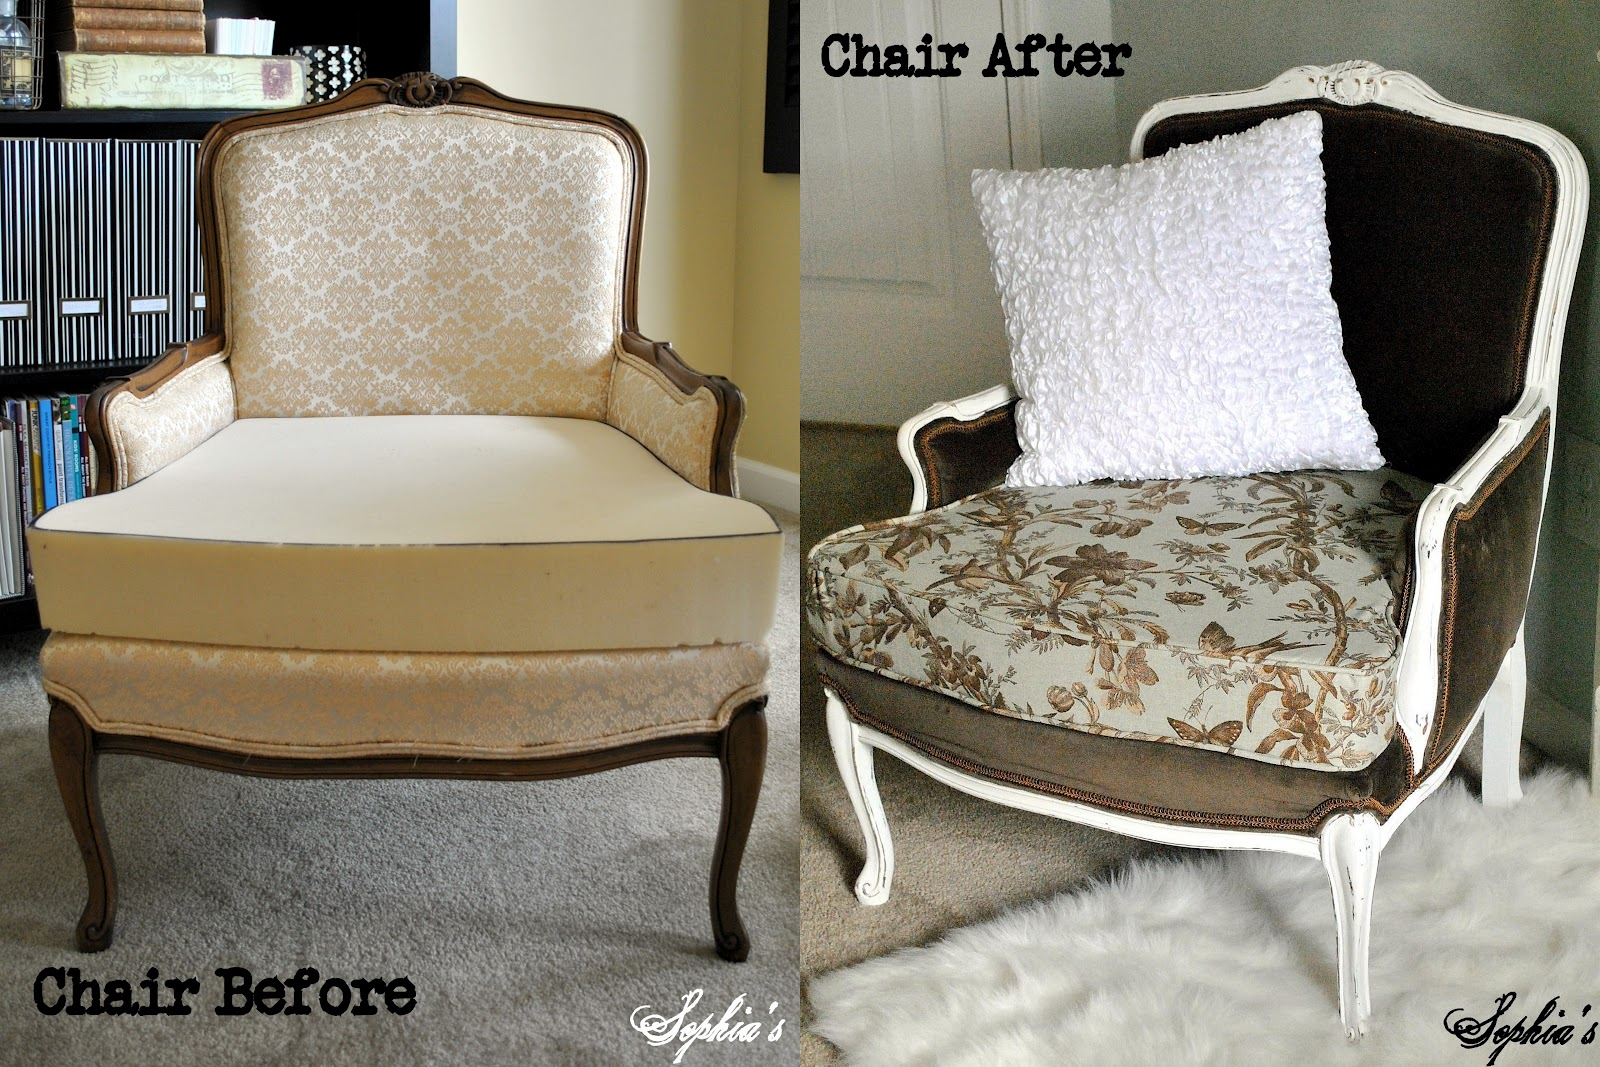 Design and Decor Thrift Store Chairs Makeover